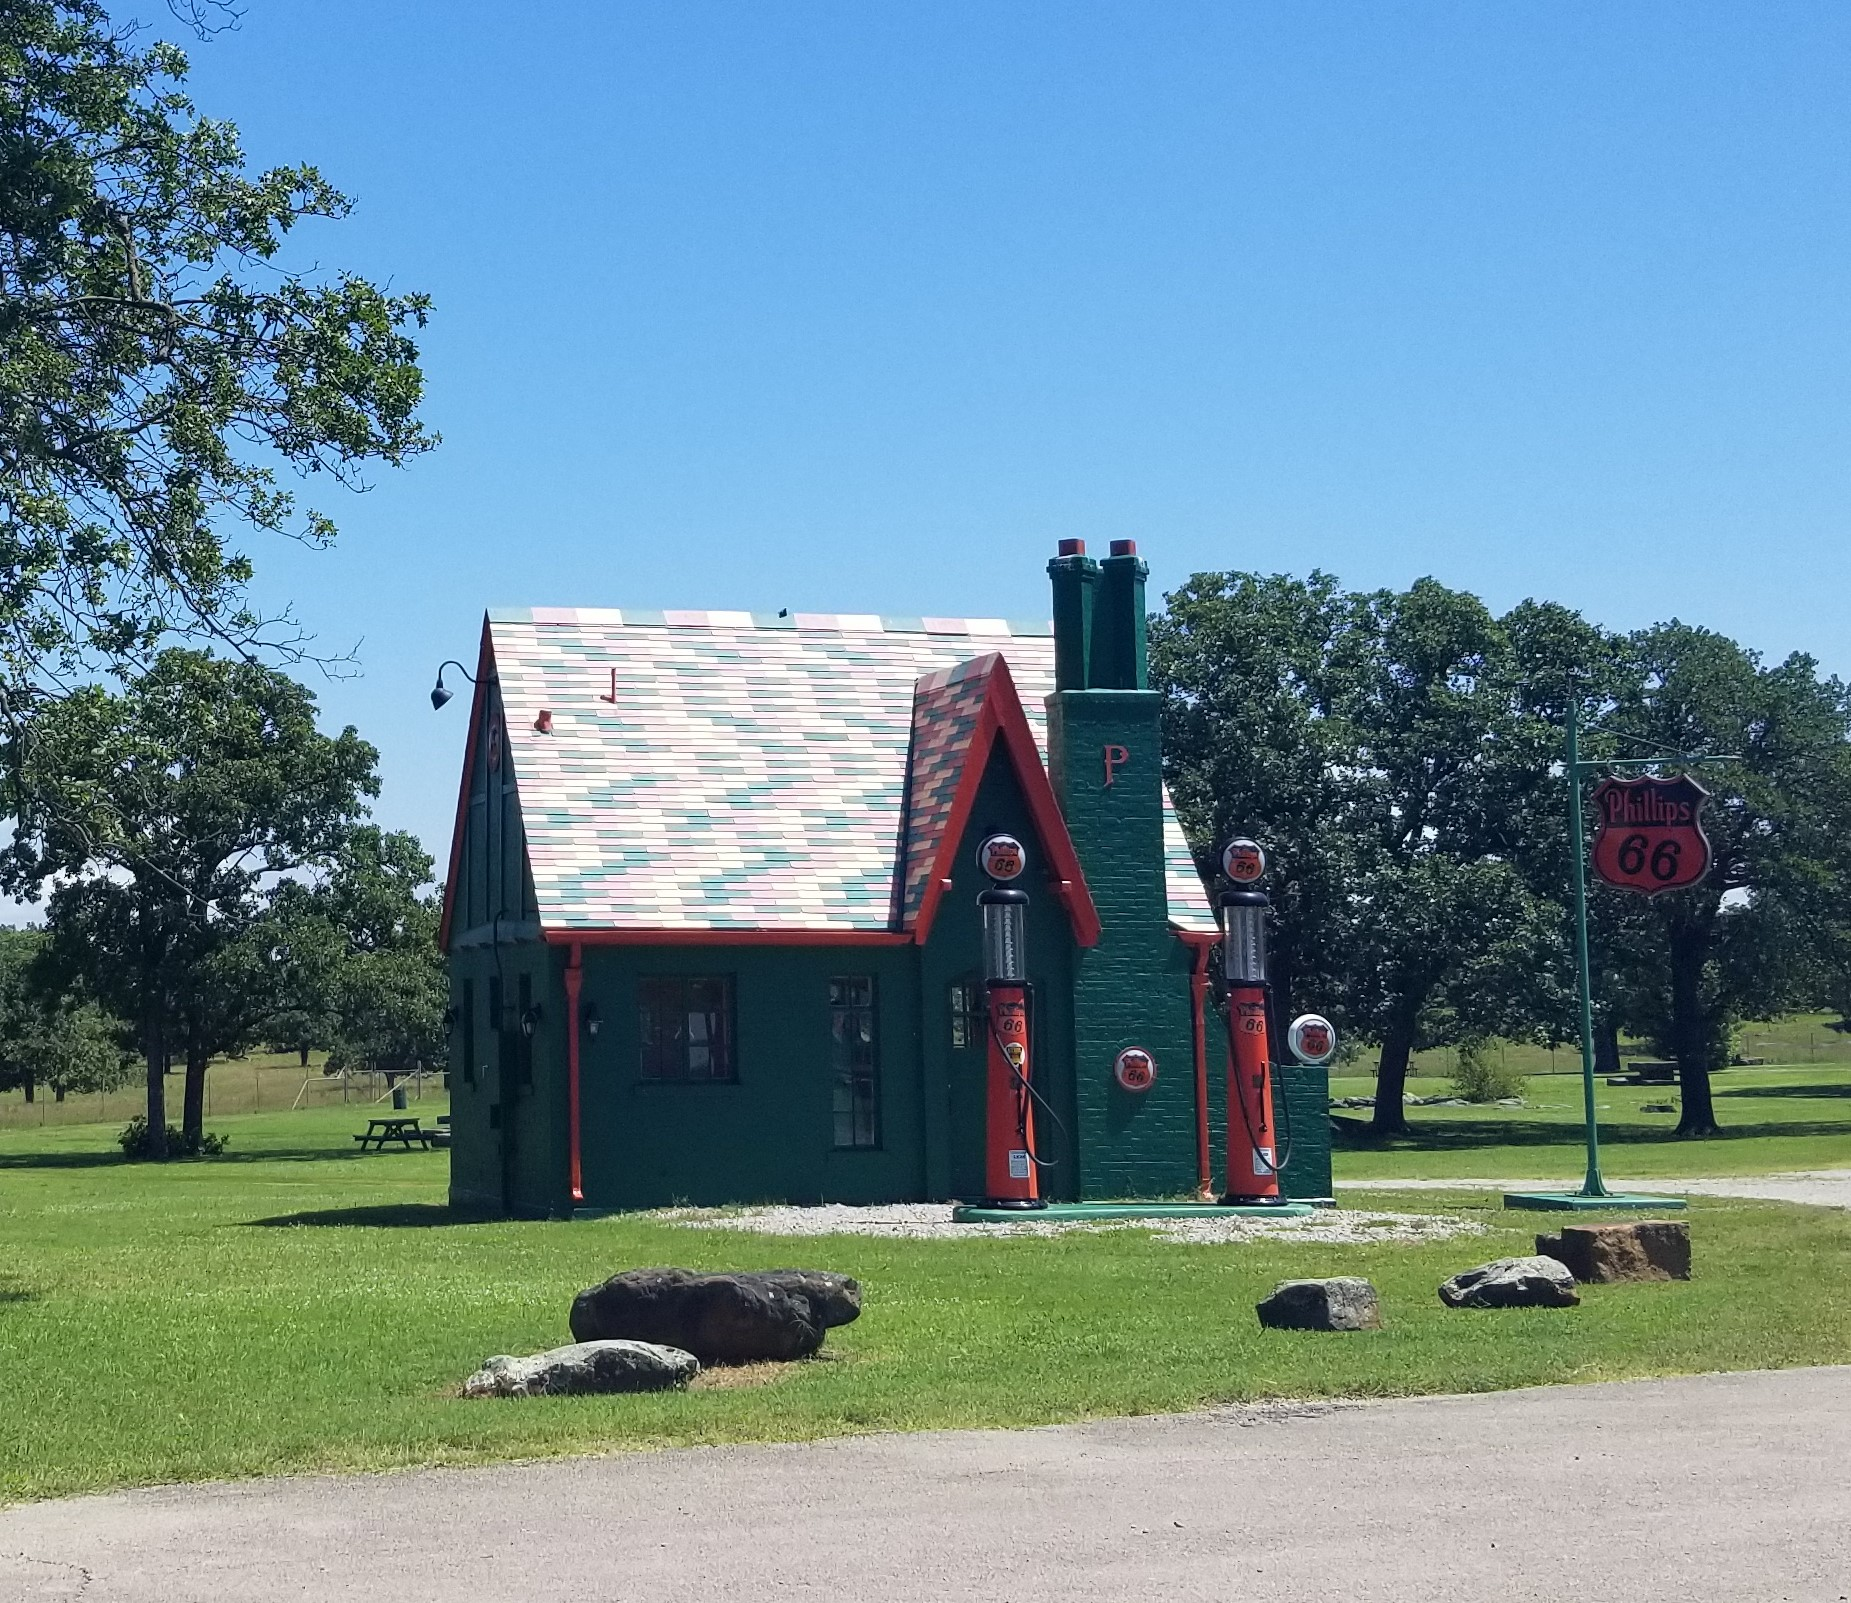 Phillips 66 gas station replica on the grounds of  Woolaroc Museum & Wildlife Preserve